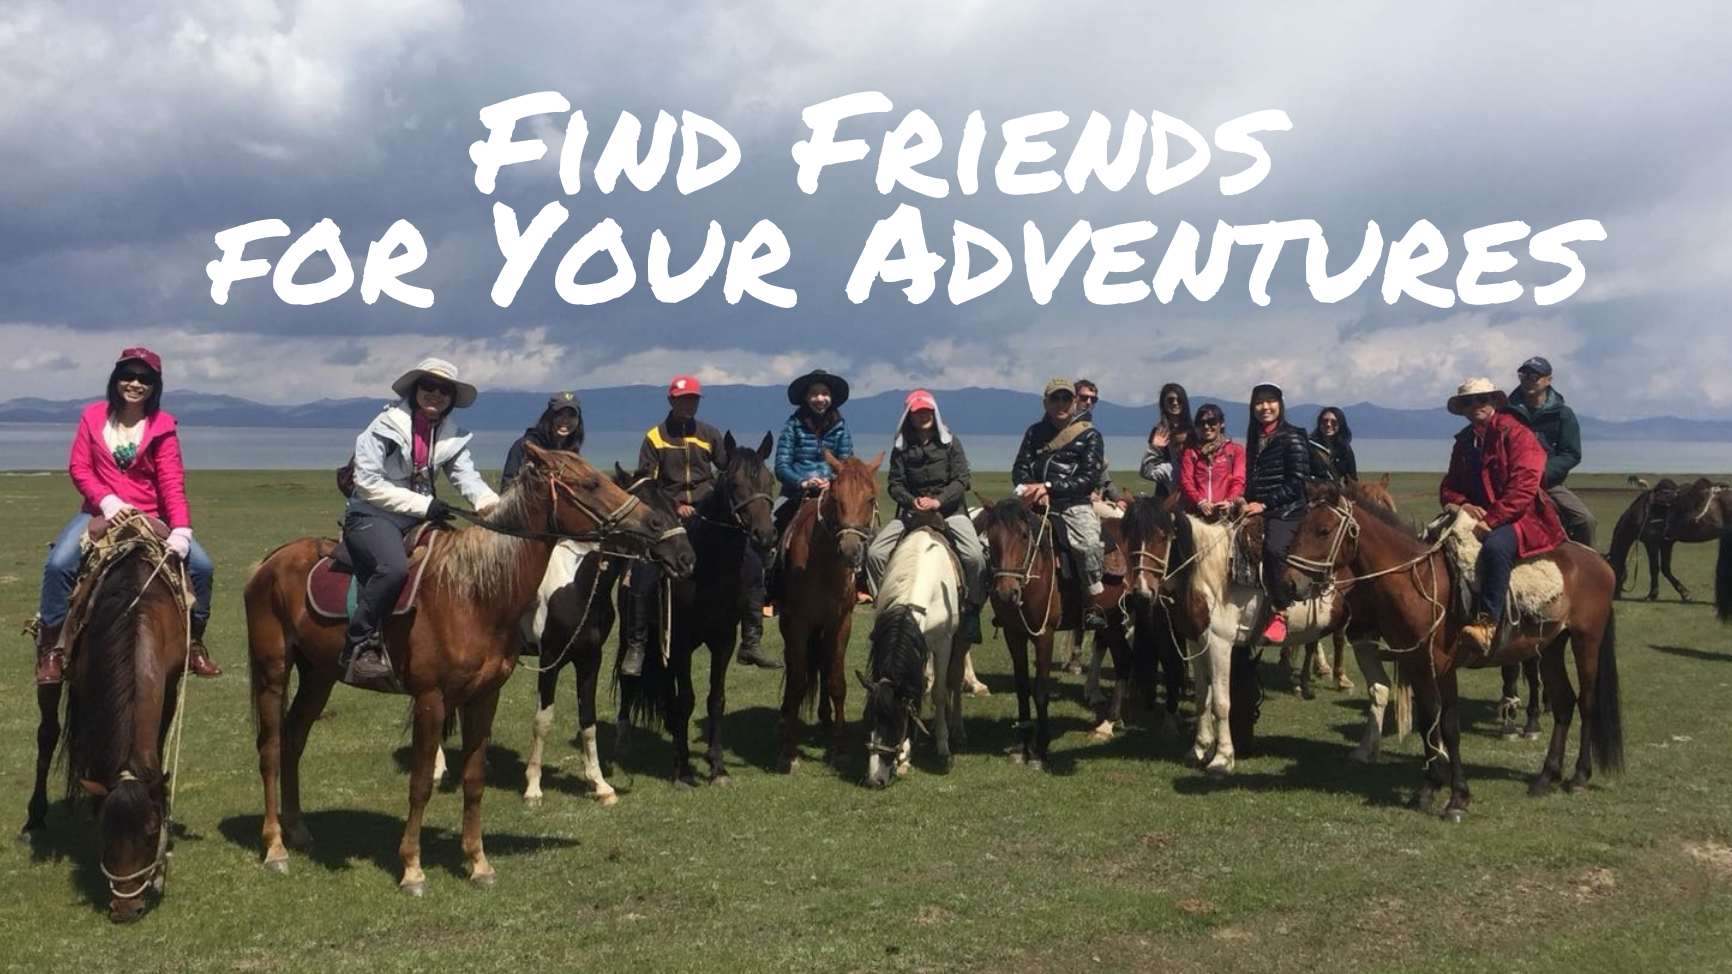 Find Friends for Your Adventures